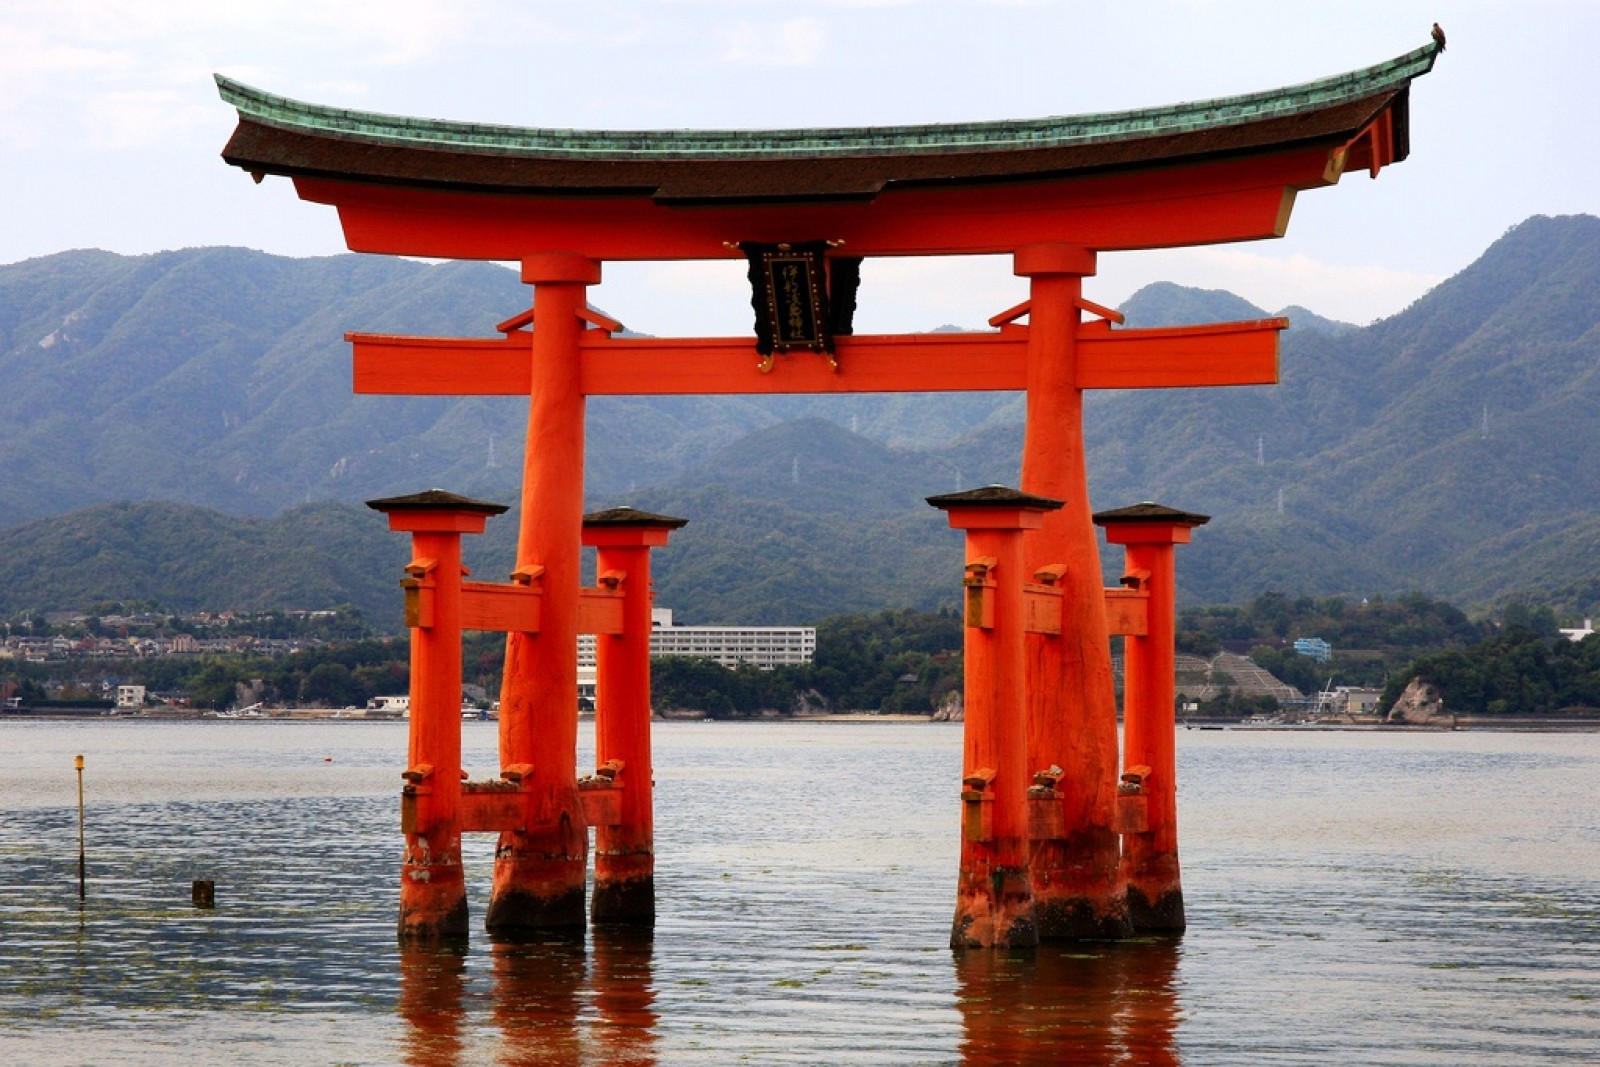 a description of shintoism which means the way of the gods Start studying religion 8 shintoism learn vocabulary, terms  the japanese often use the term kami-no-michi, which also means the way of the gods, to describe.